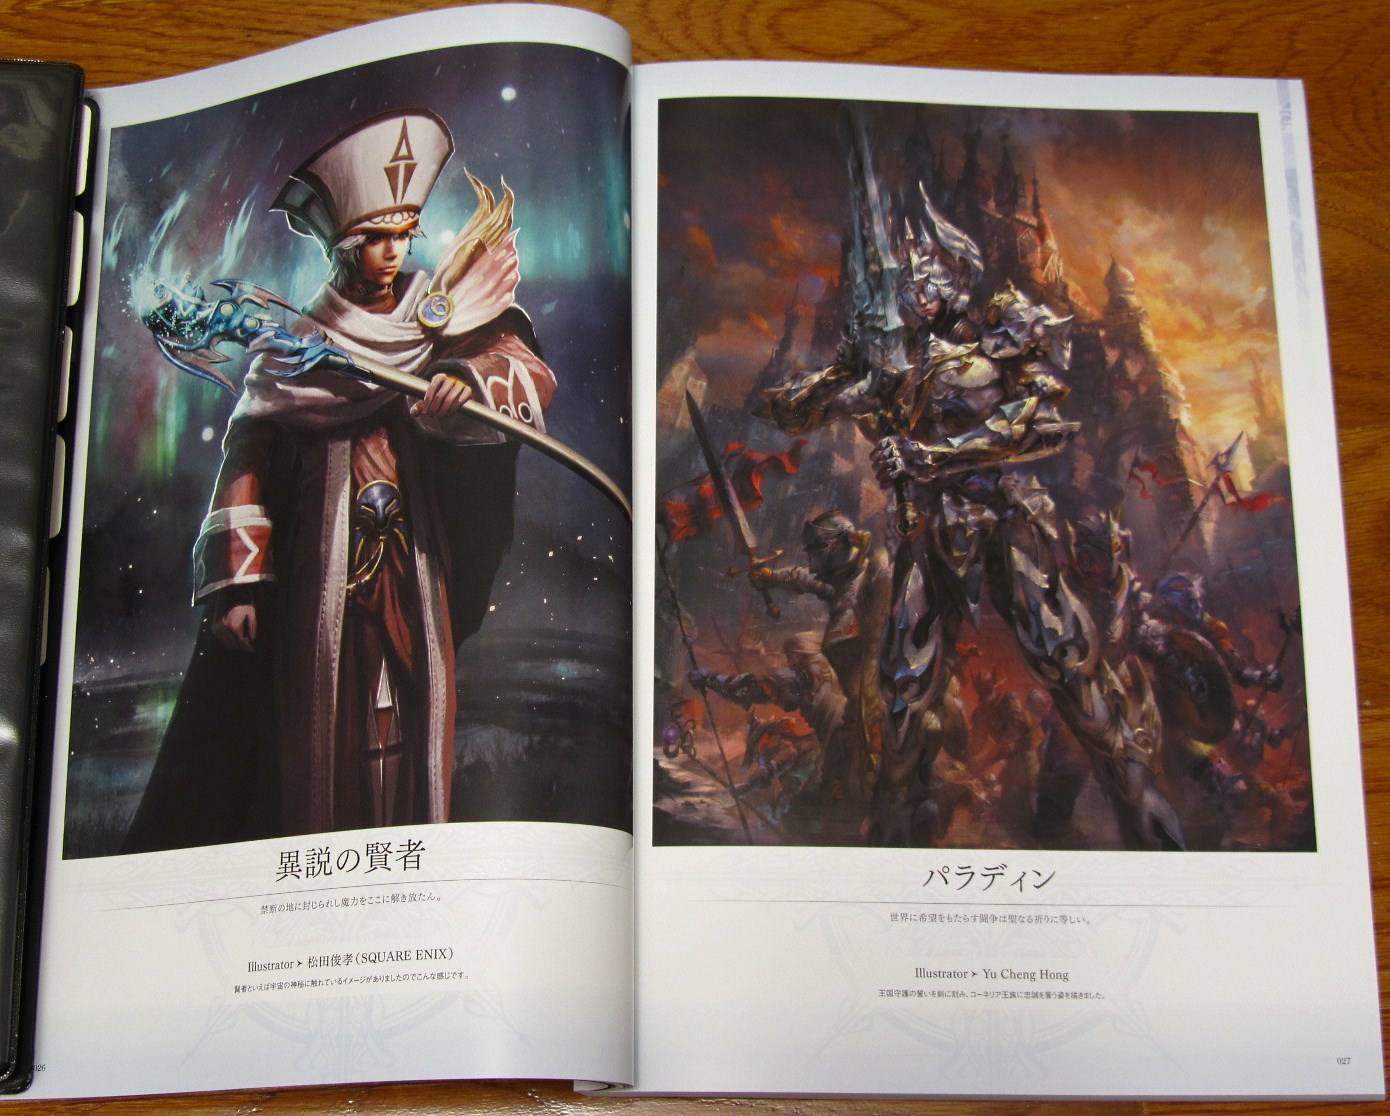 Mobius Final Fantasy First Anniversary Collections Art